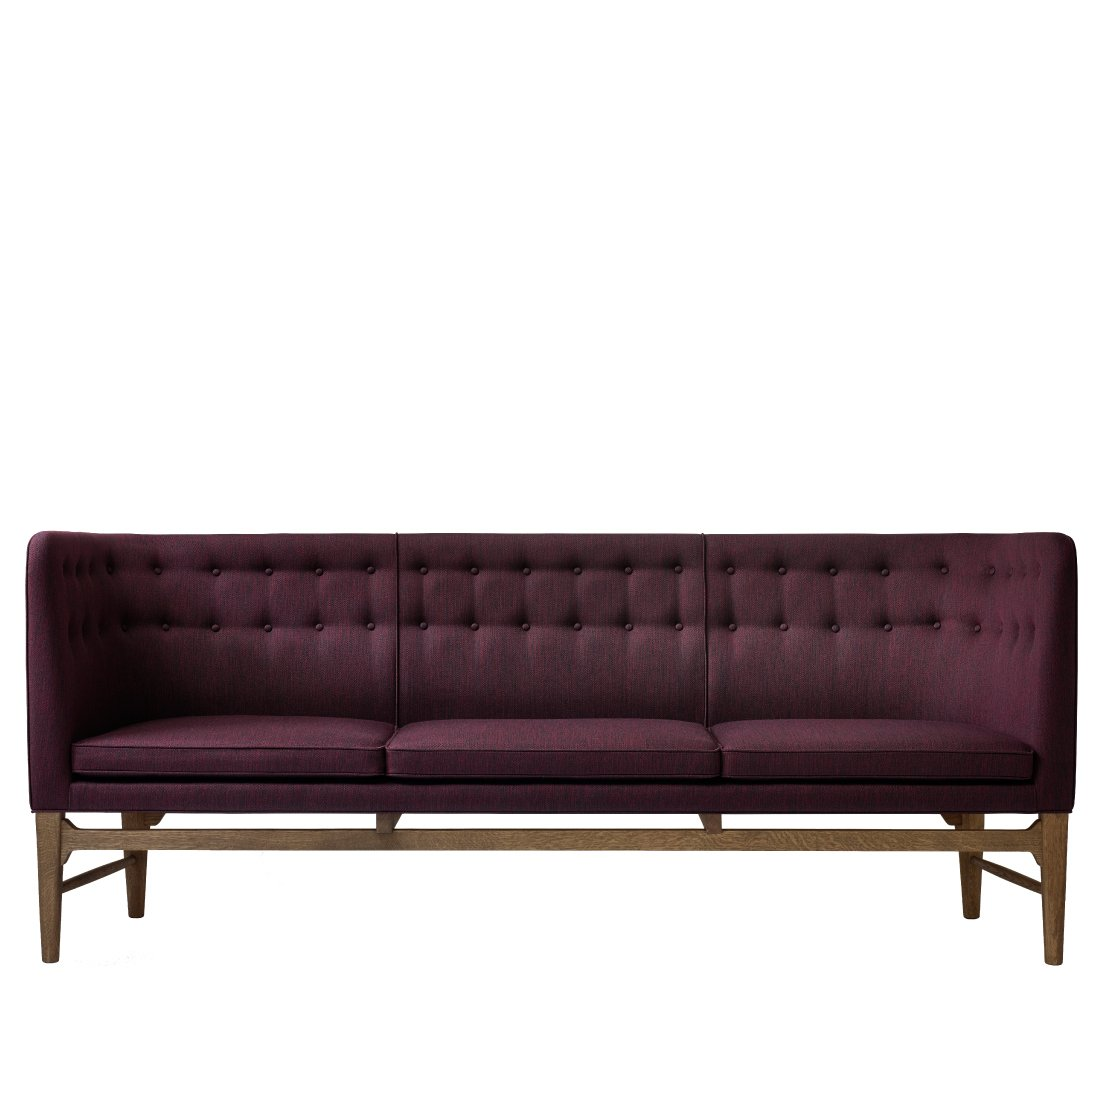 Mayor Sofa AJ5 Bank - &Tradition Balder 3 - 692